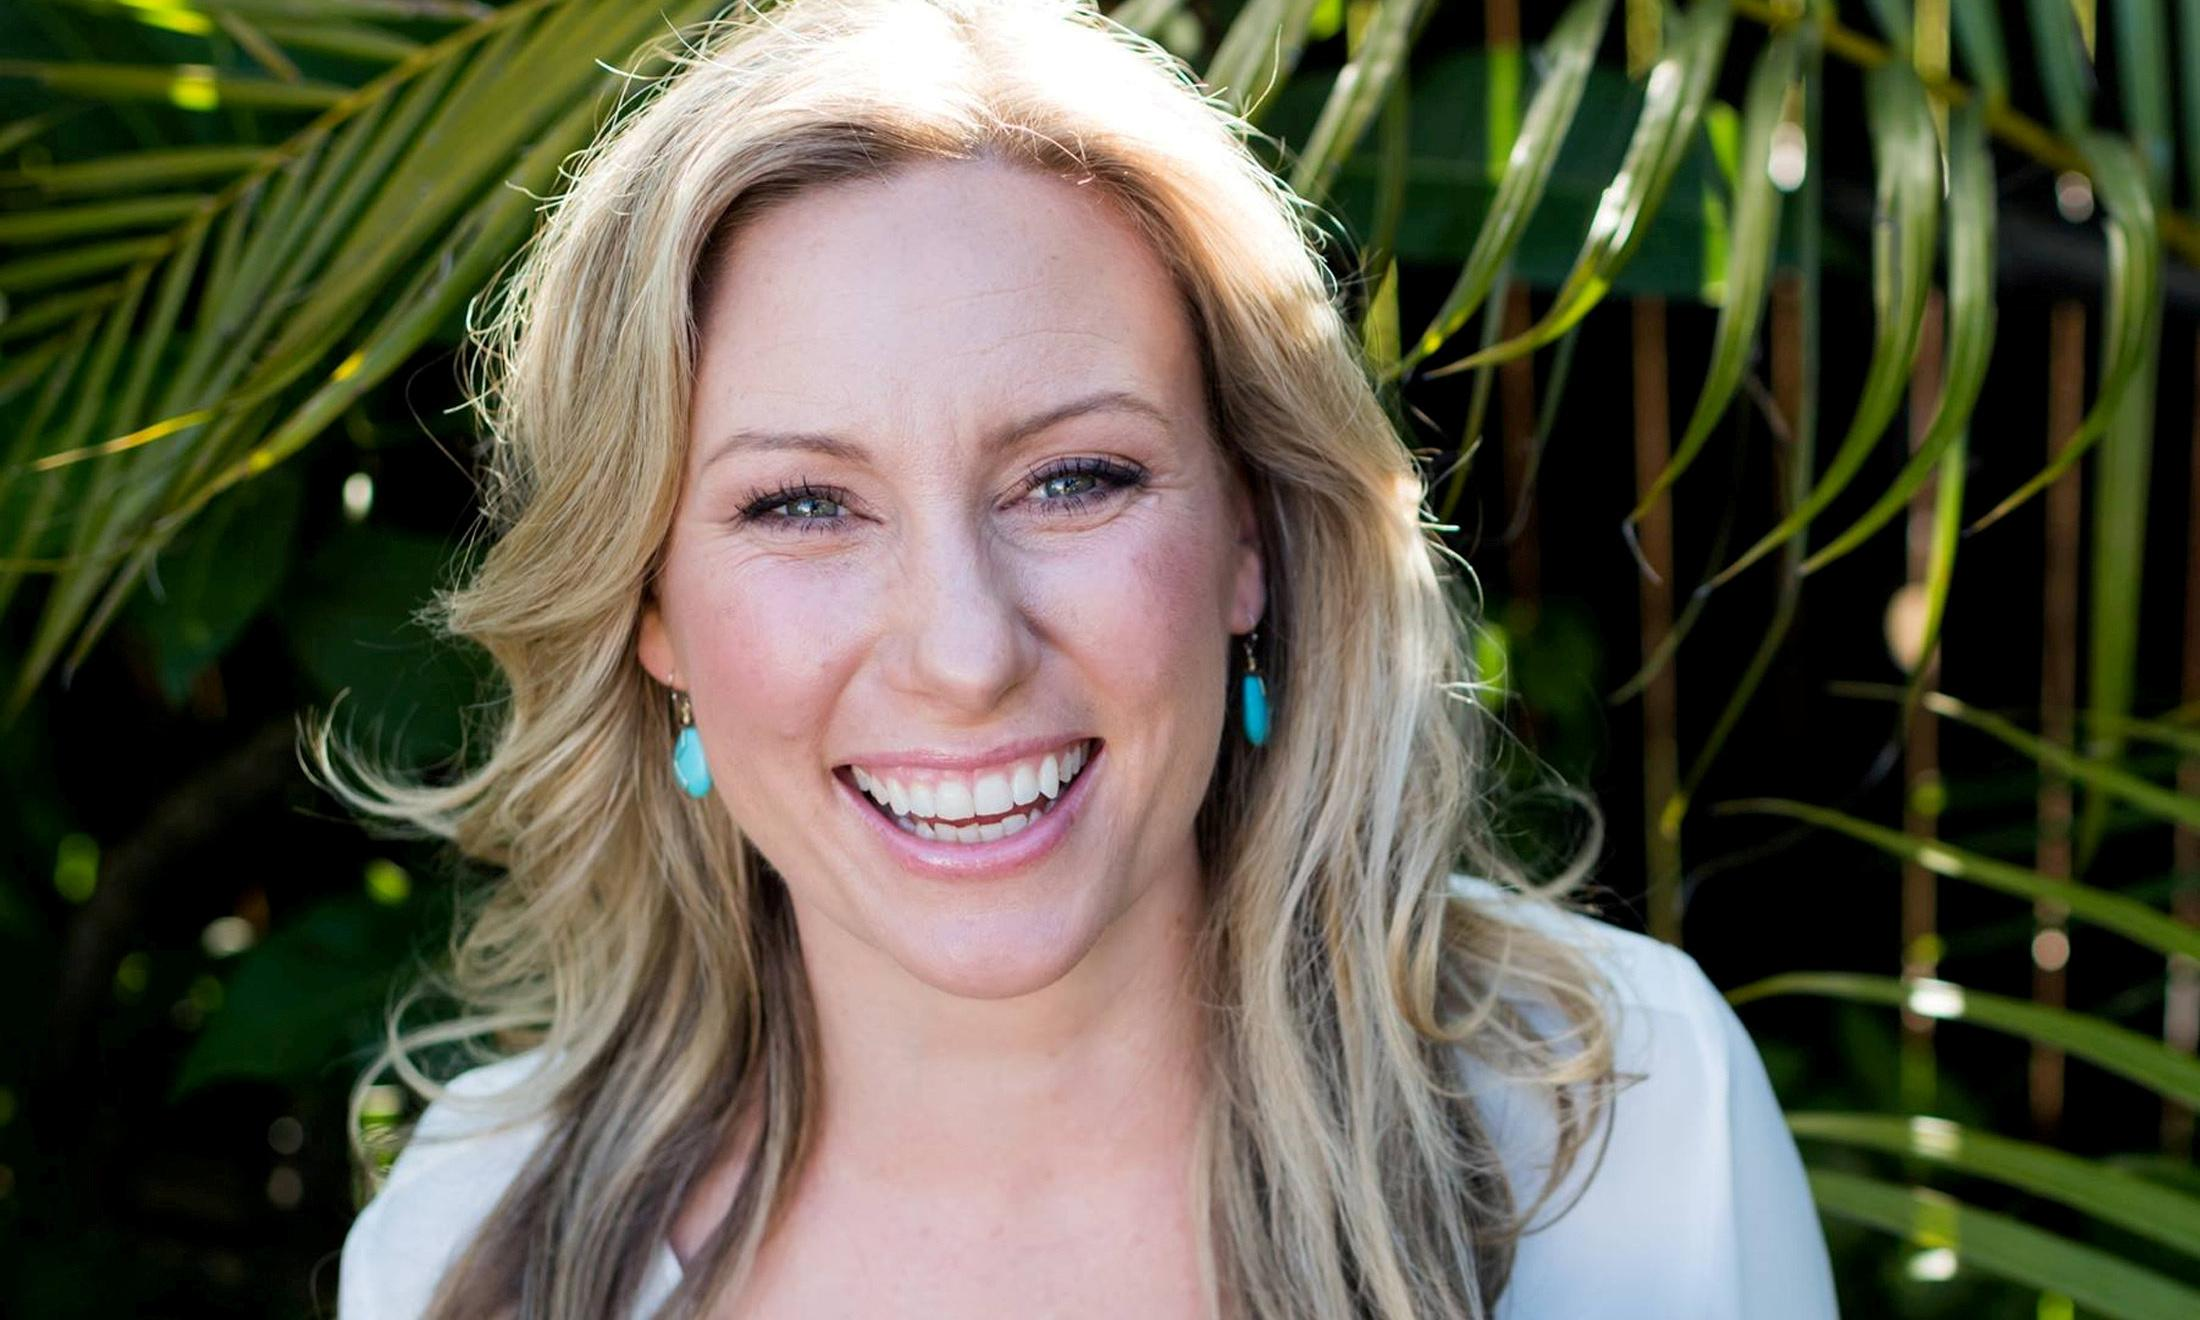 Justine Damond shooting: US police officer Mohamed Noor files appeal